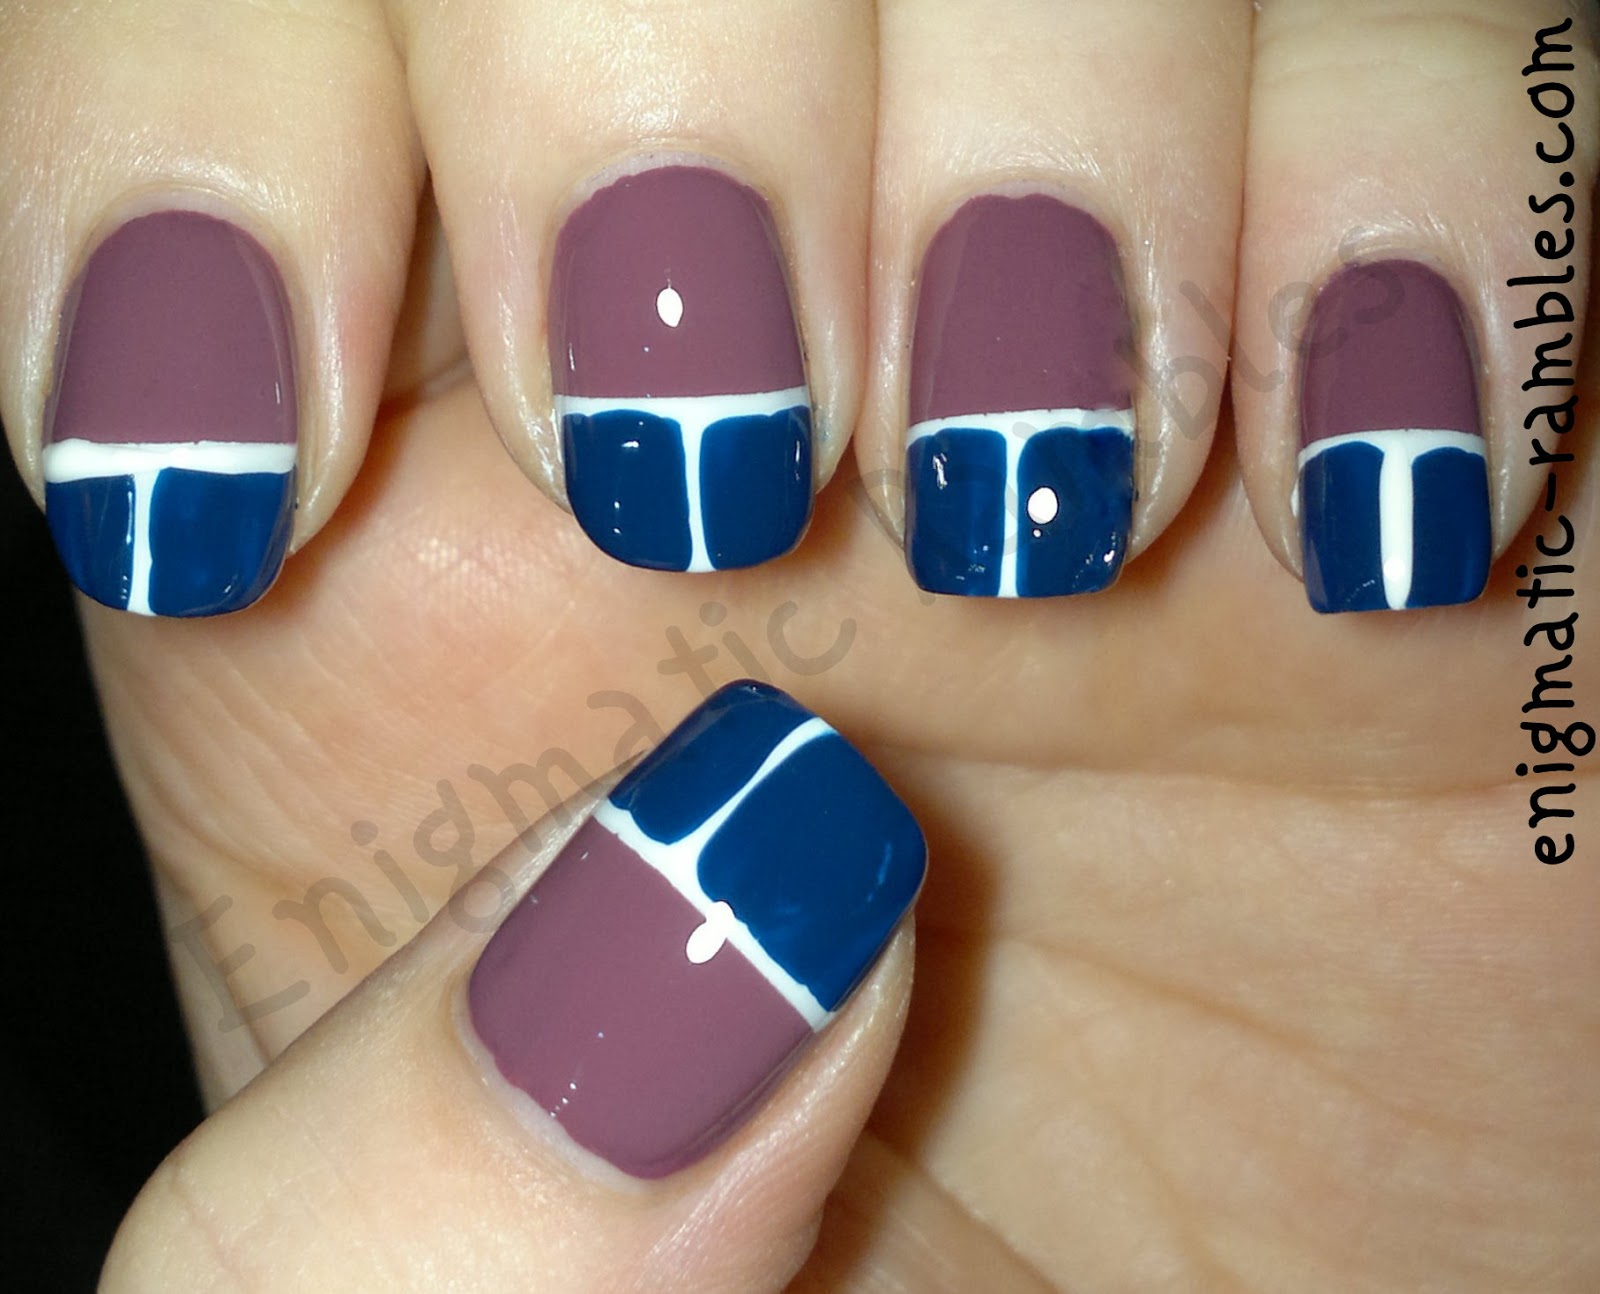 beetle-stripping-tape-tips-nails-sinful-colors-snow-me-white-barry-m-blue-plum-leighton-denny-crushed-grape